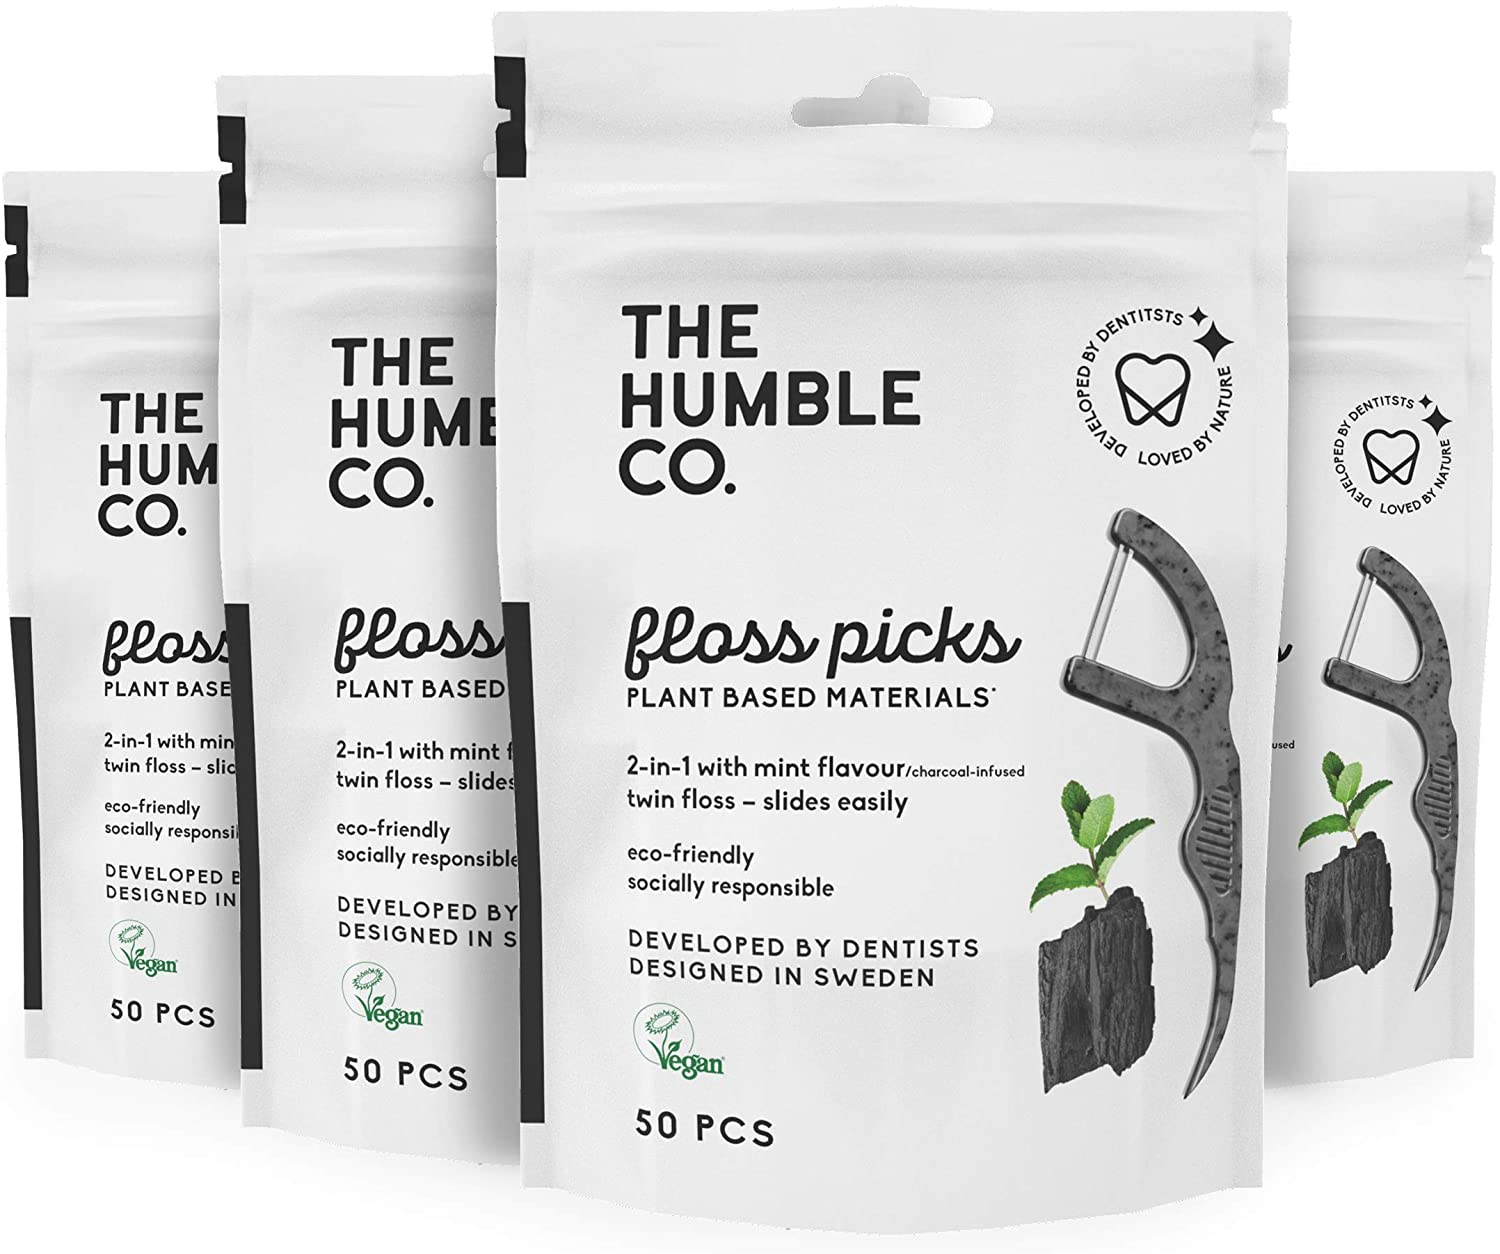 The Humble Co. Natural Vegan Tooth Floss Picks, 200-Count